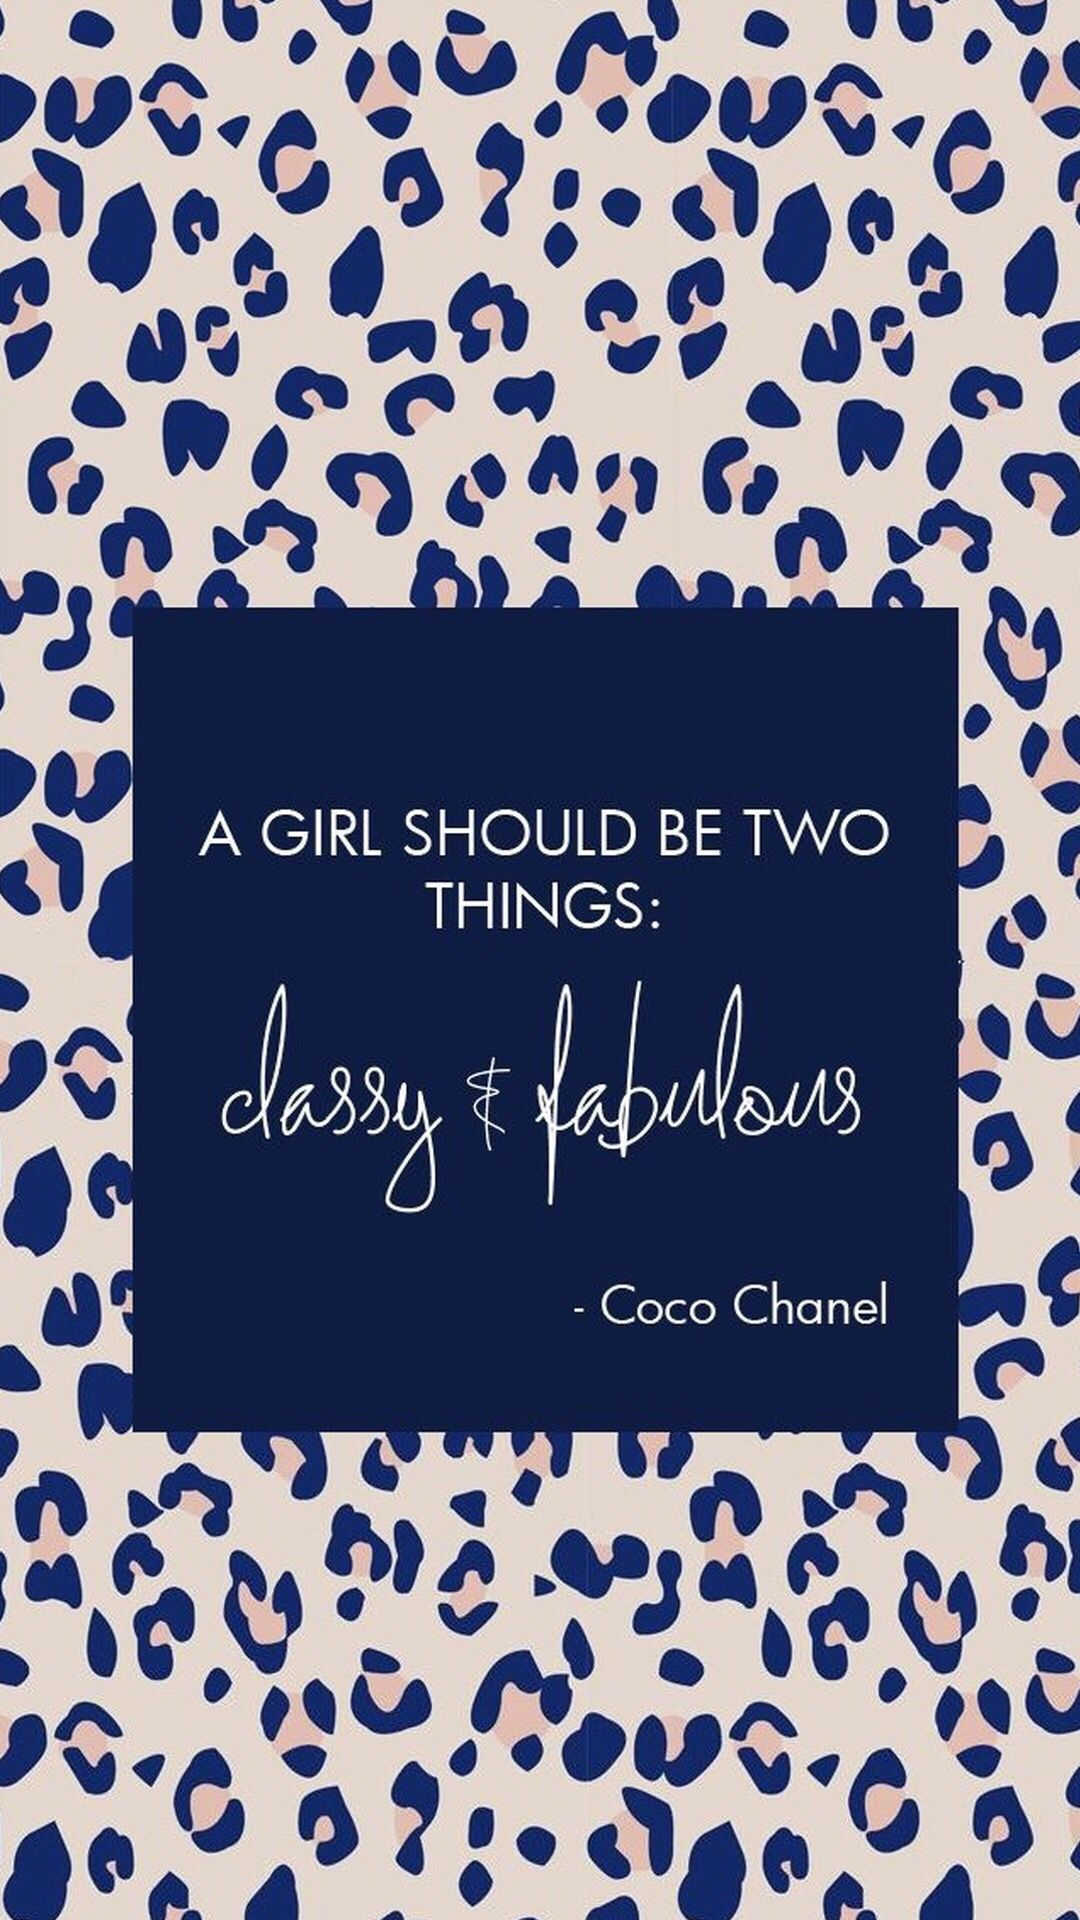 A Girl Should Be Two Things Classy And Fabulous Iphone Background Wallpaper Quotes Iphone Wallpaper